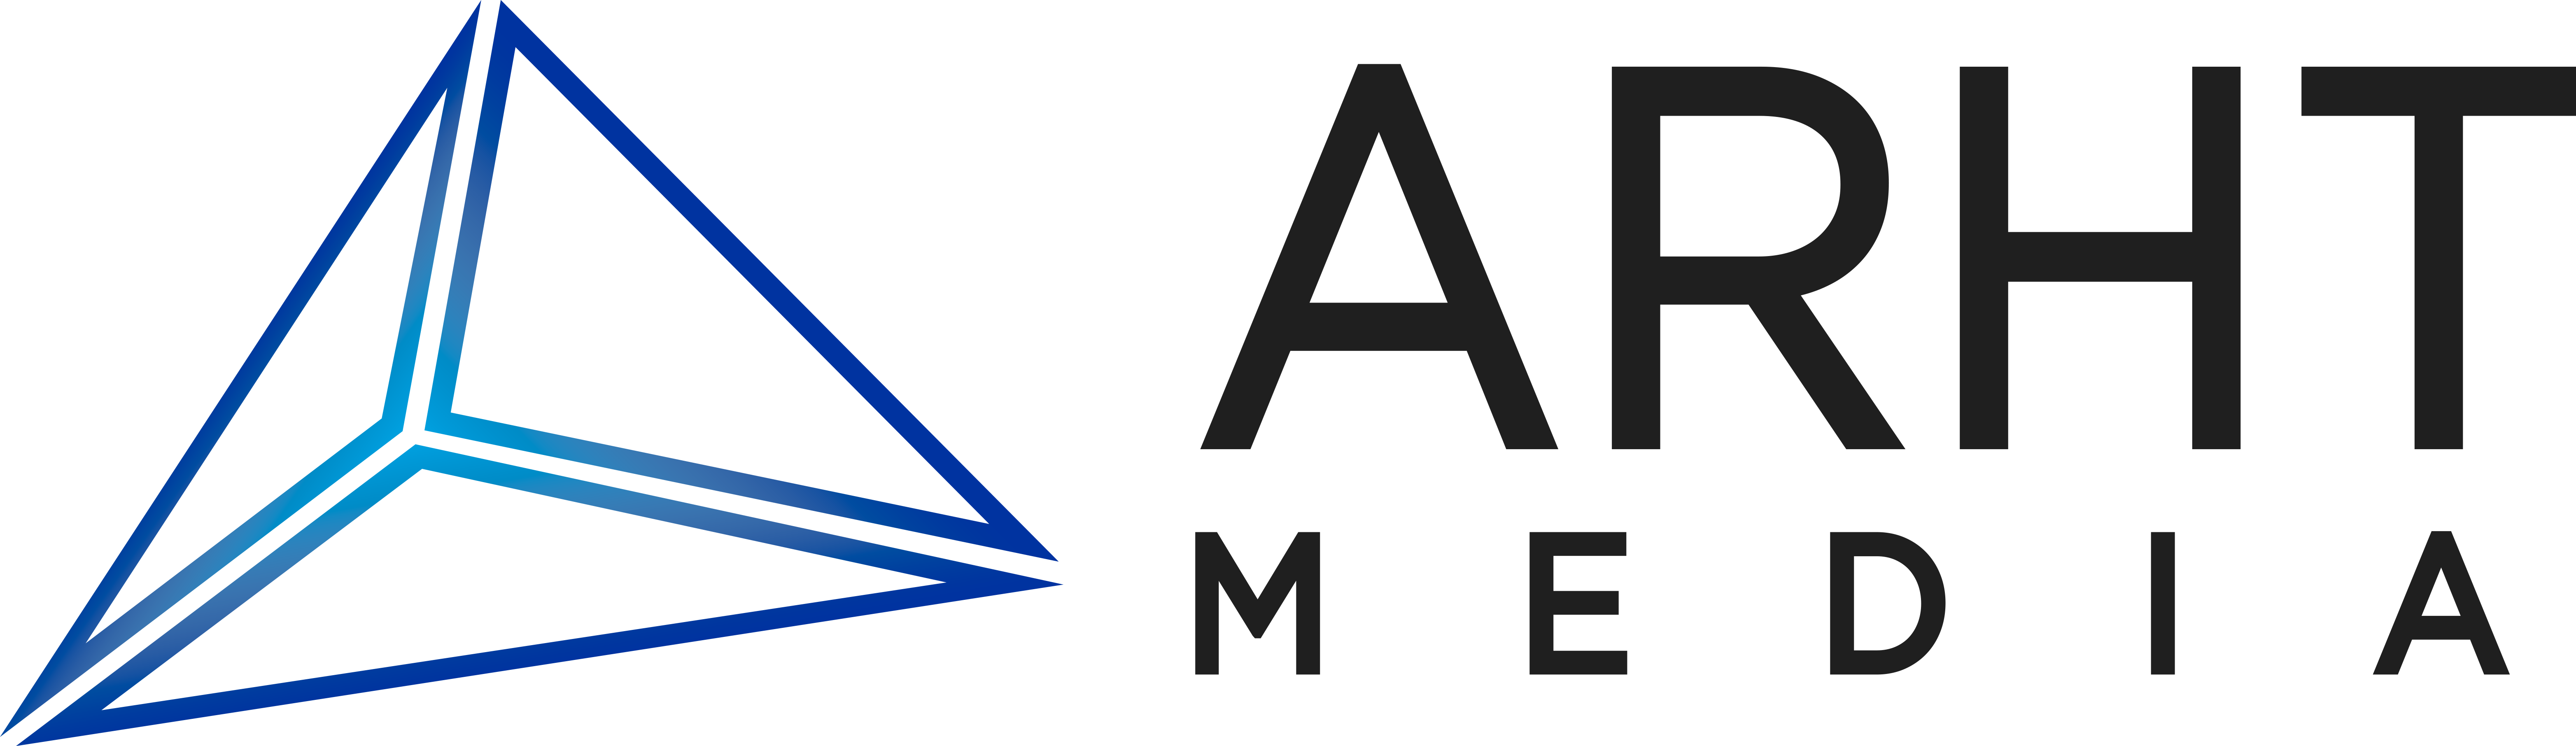 ARHT Media Launches HoloPod™ Display at UHN KITE Research - Opportunity to Deliver Healthcare Throughout the Province